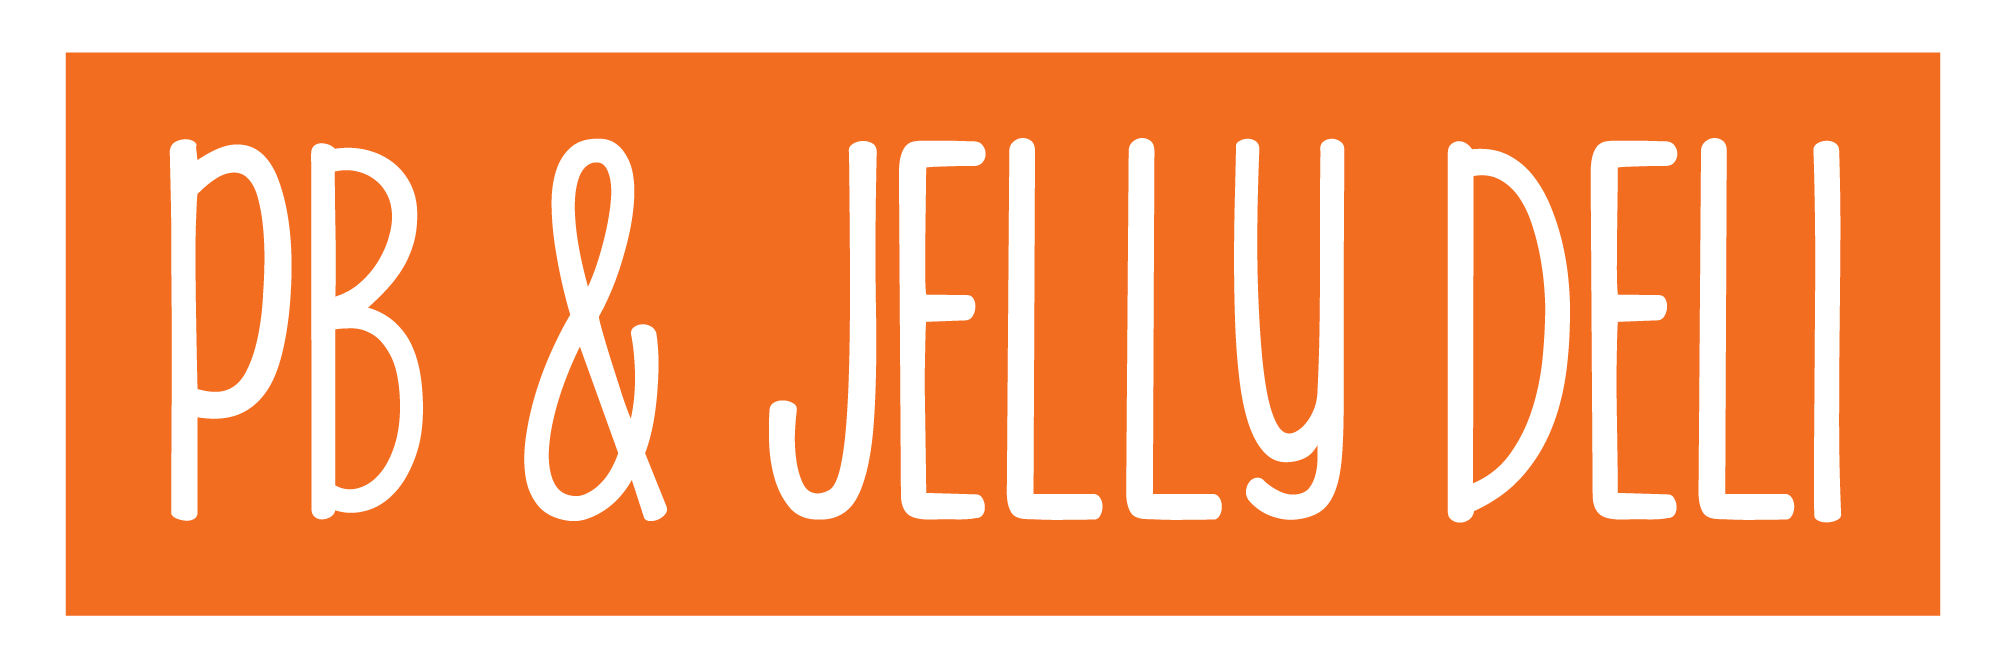 pb & jelly deli